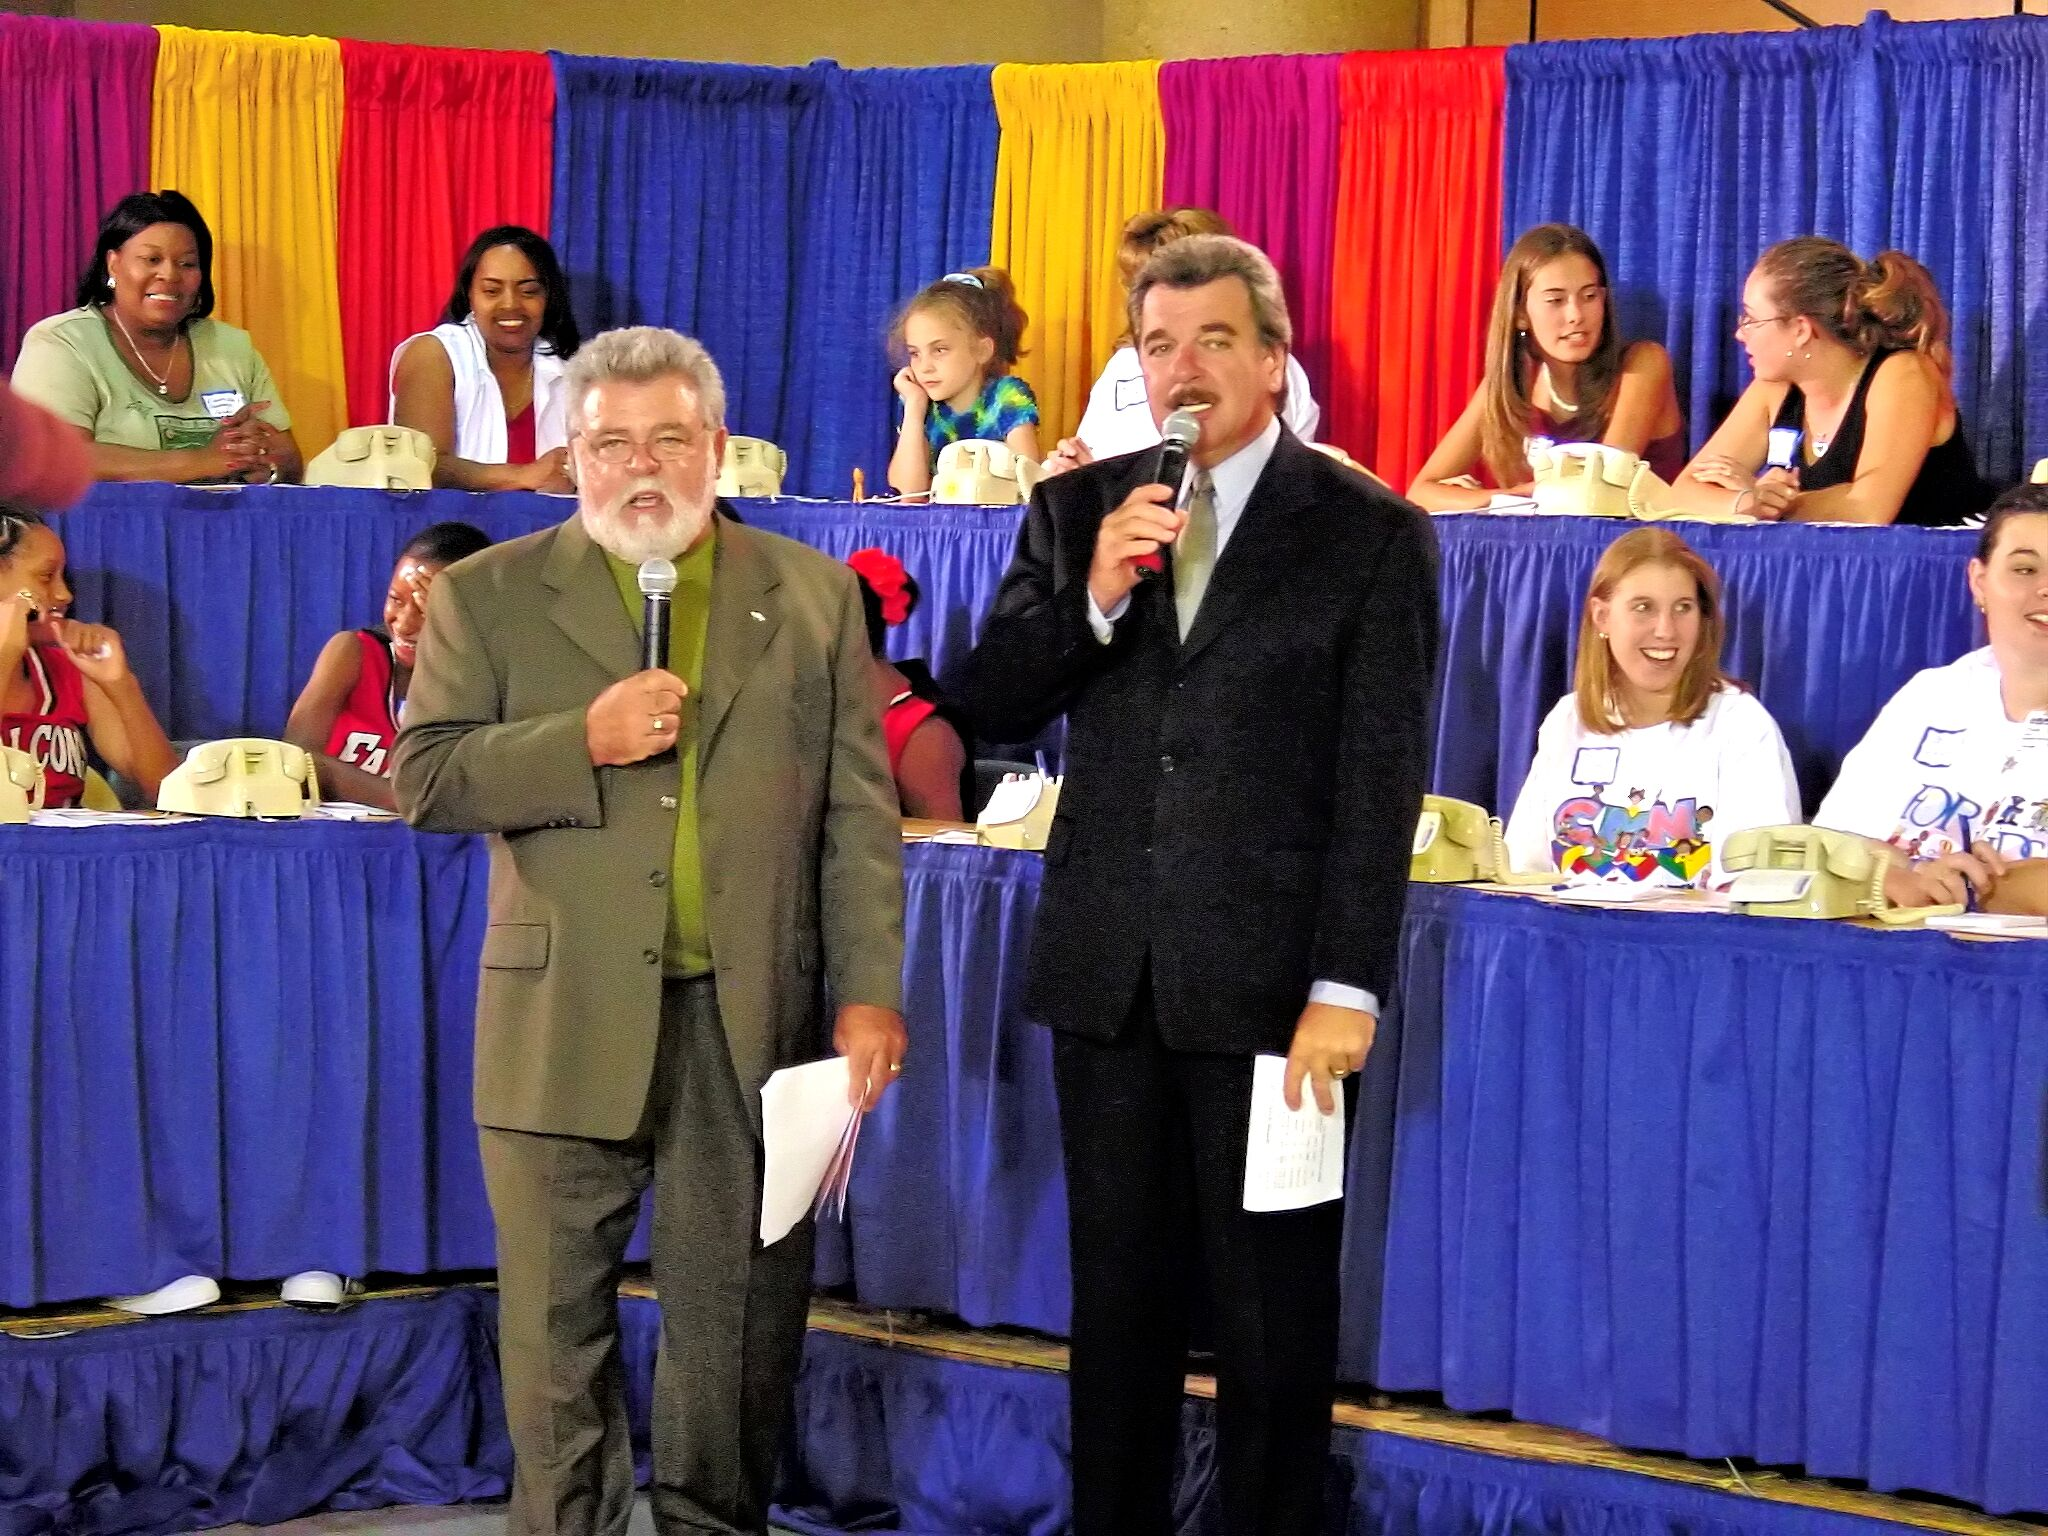 Broadcasting a telethon with Bob Johnson in the late 1990s. (Image via John Creel)<p></p>